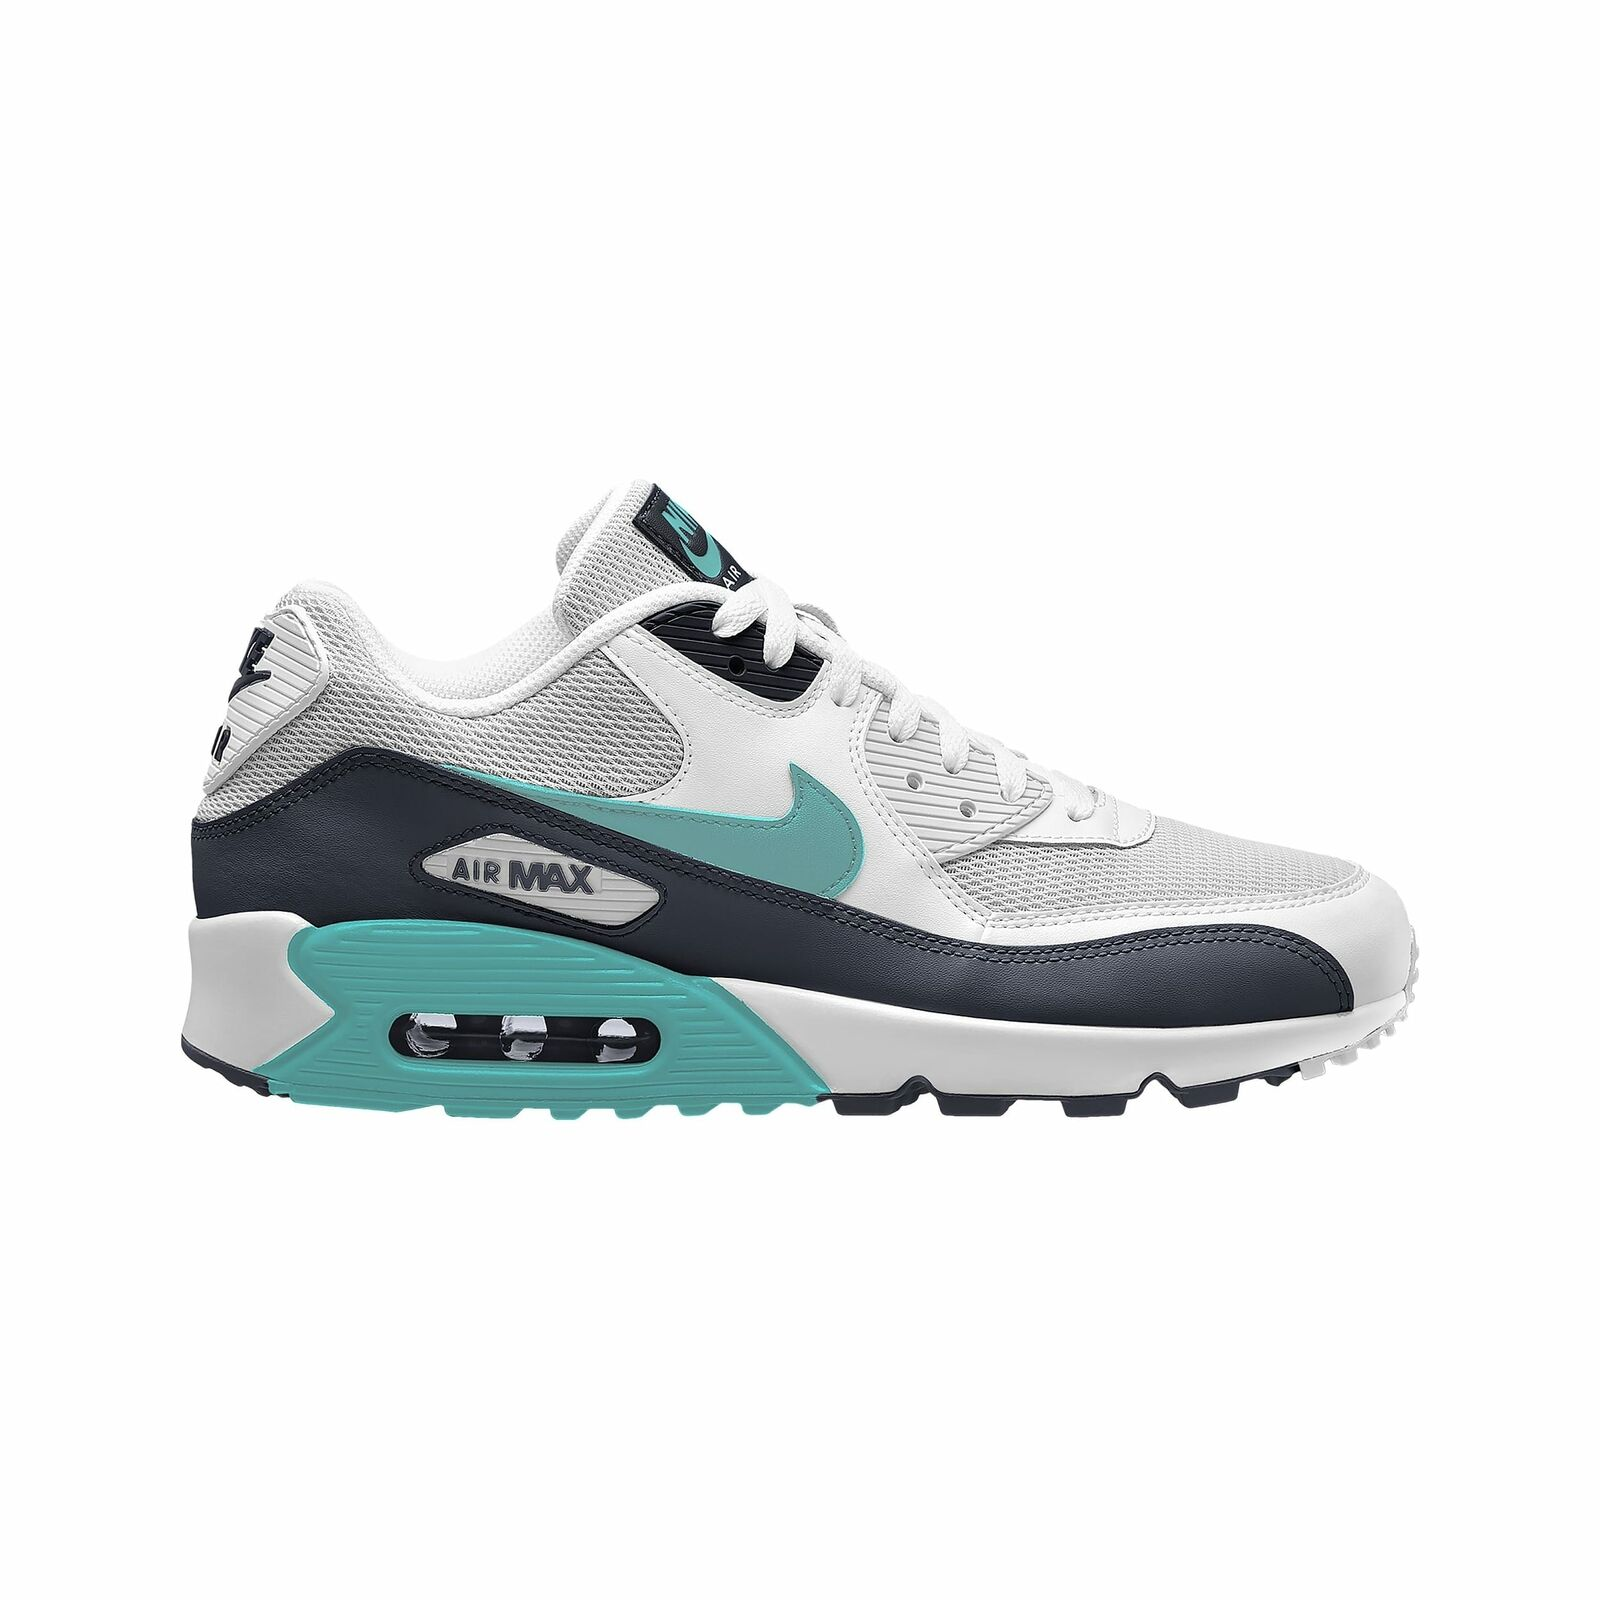 Nike Air Max 90 - Men's White Aurora Green Aurora Green Obsidian J1285102